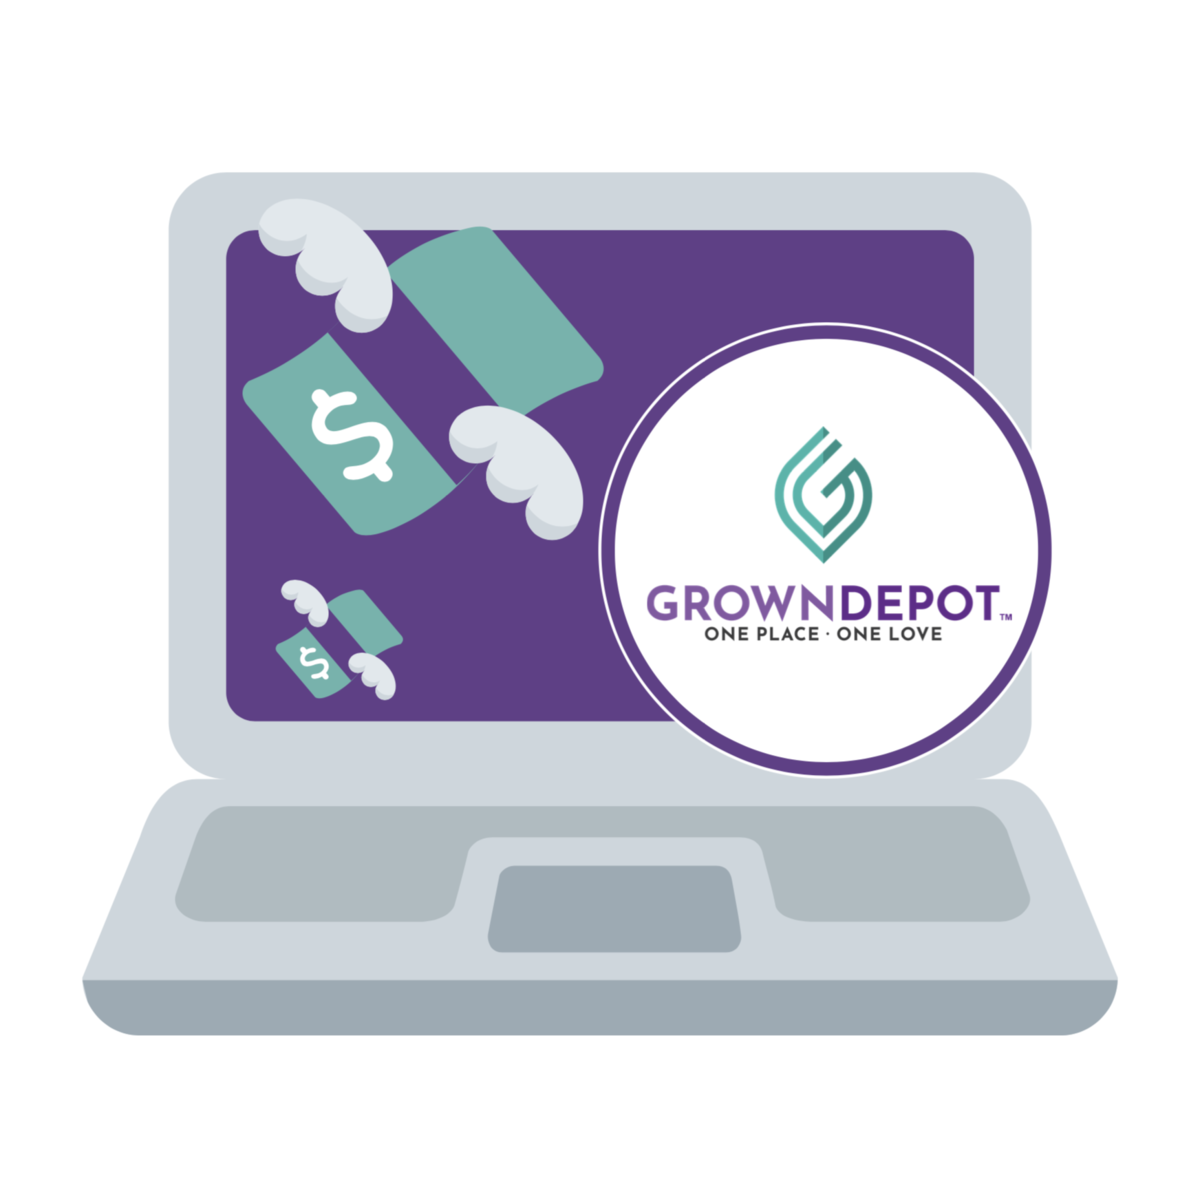 Grown Depot - Valuable New Sales Channel